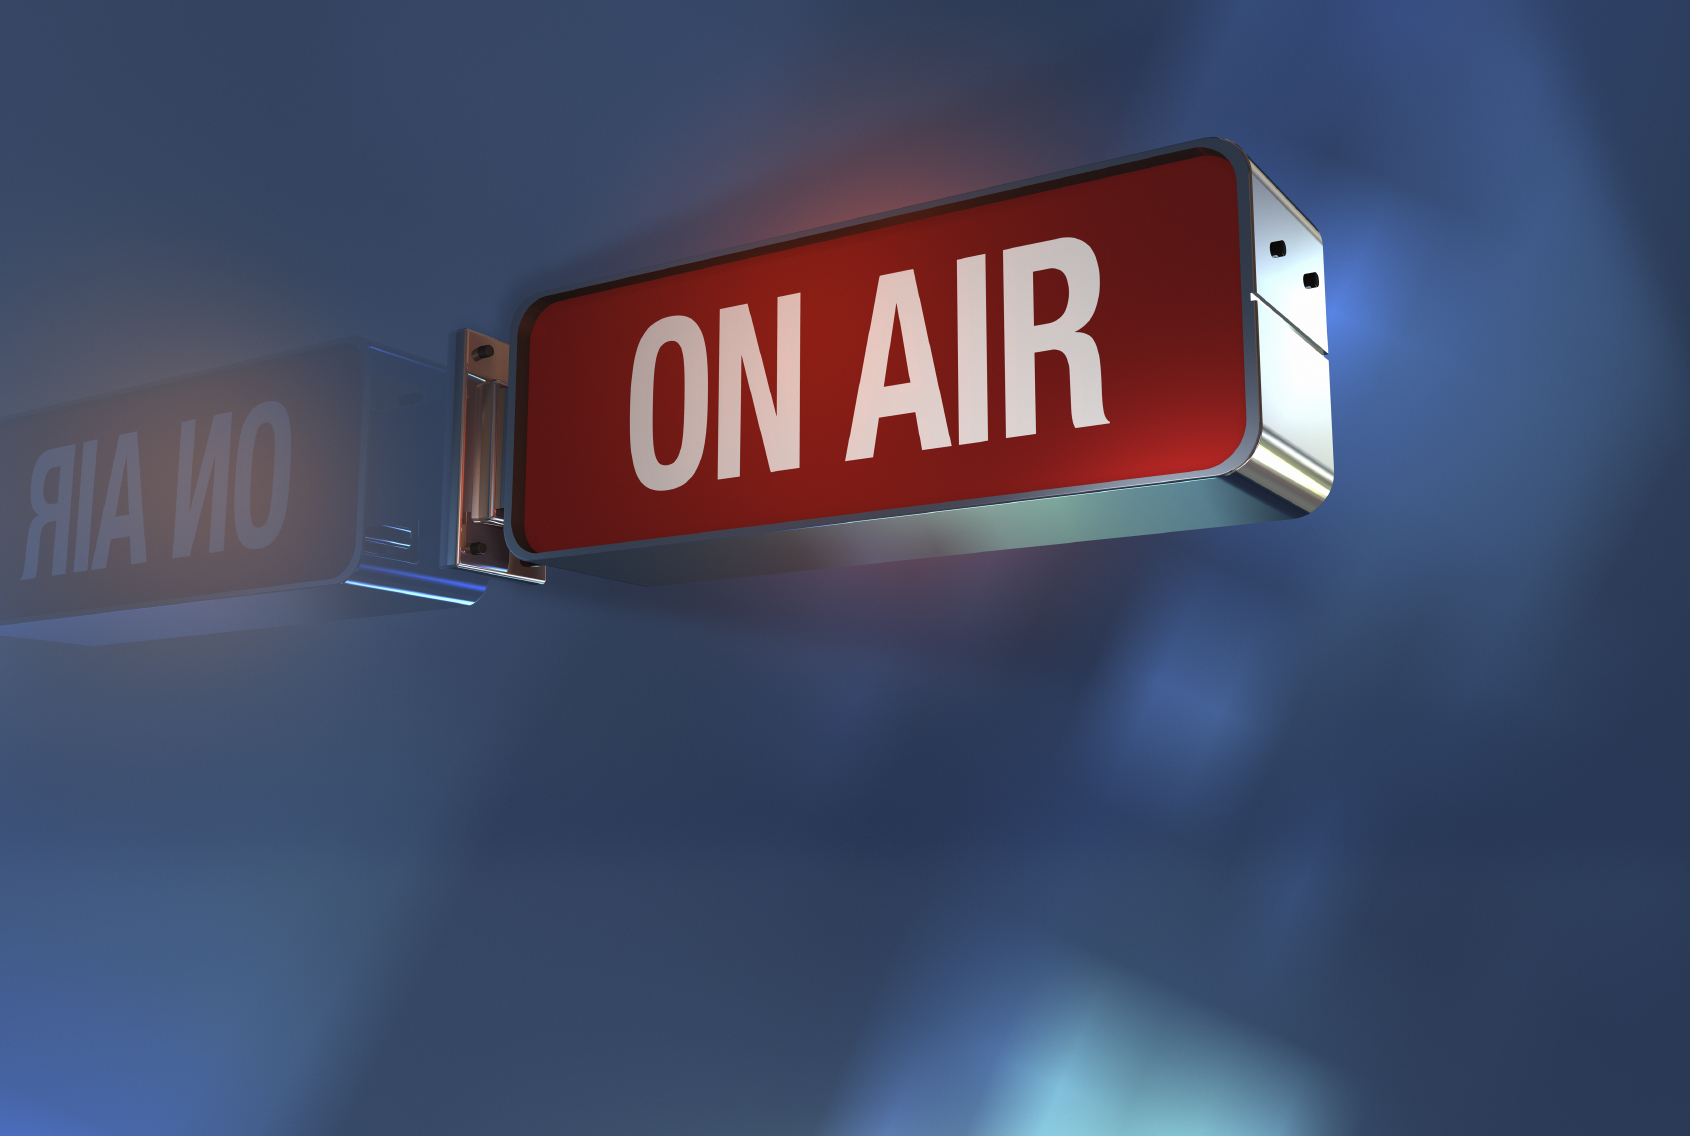 On Air Sign Radio  Free Images at Clker.com  vector clip art online